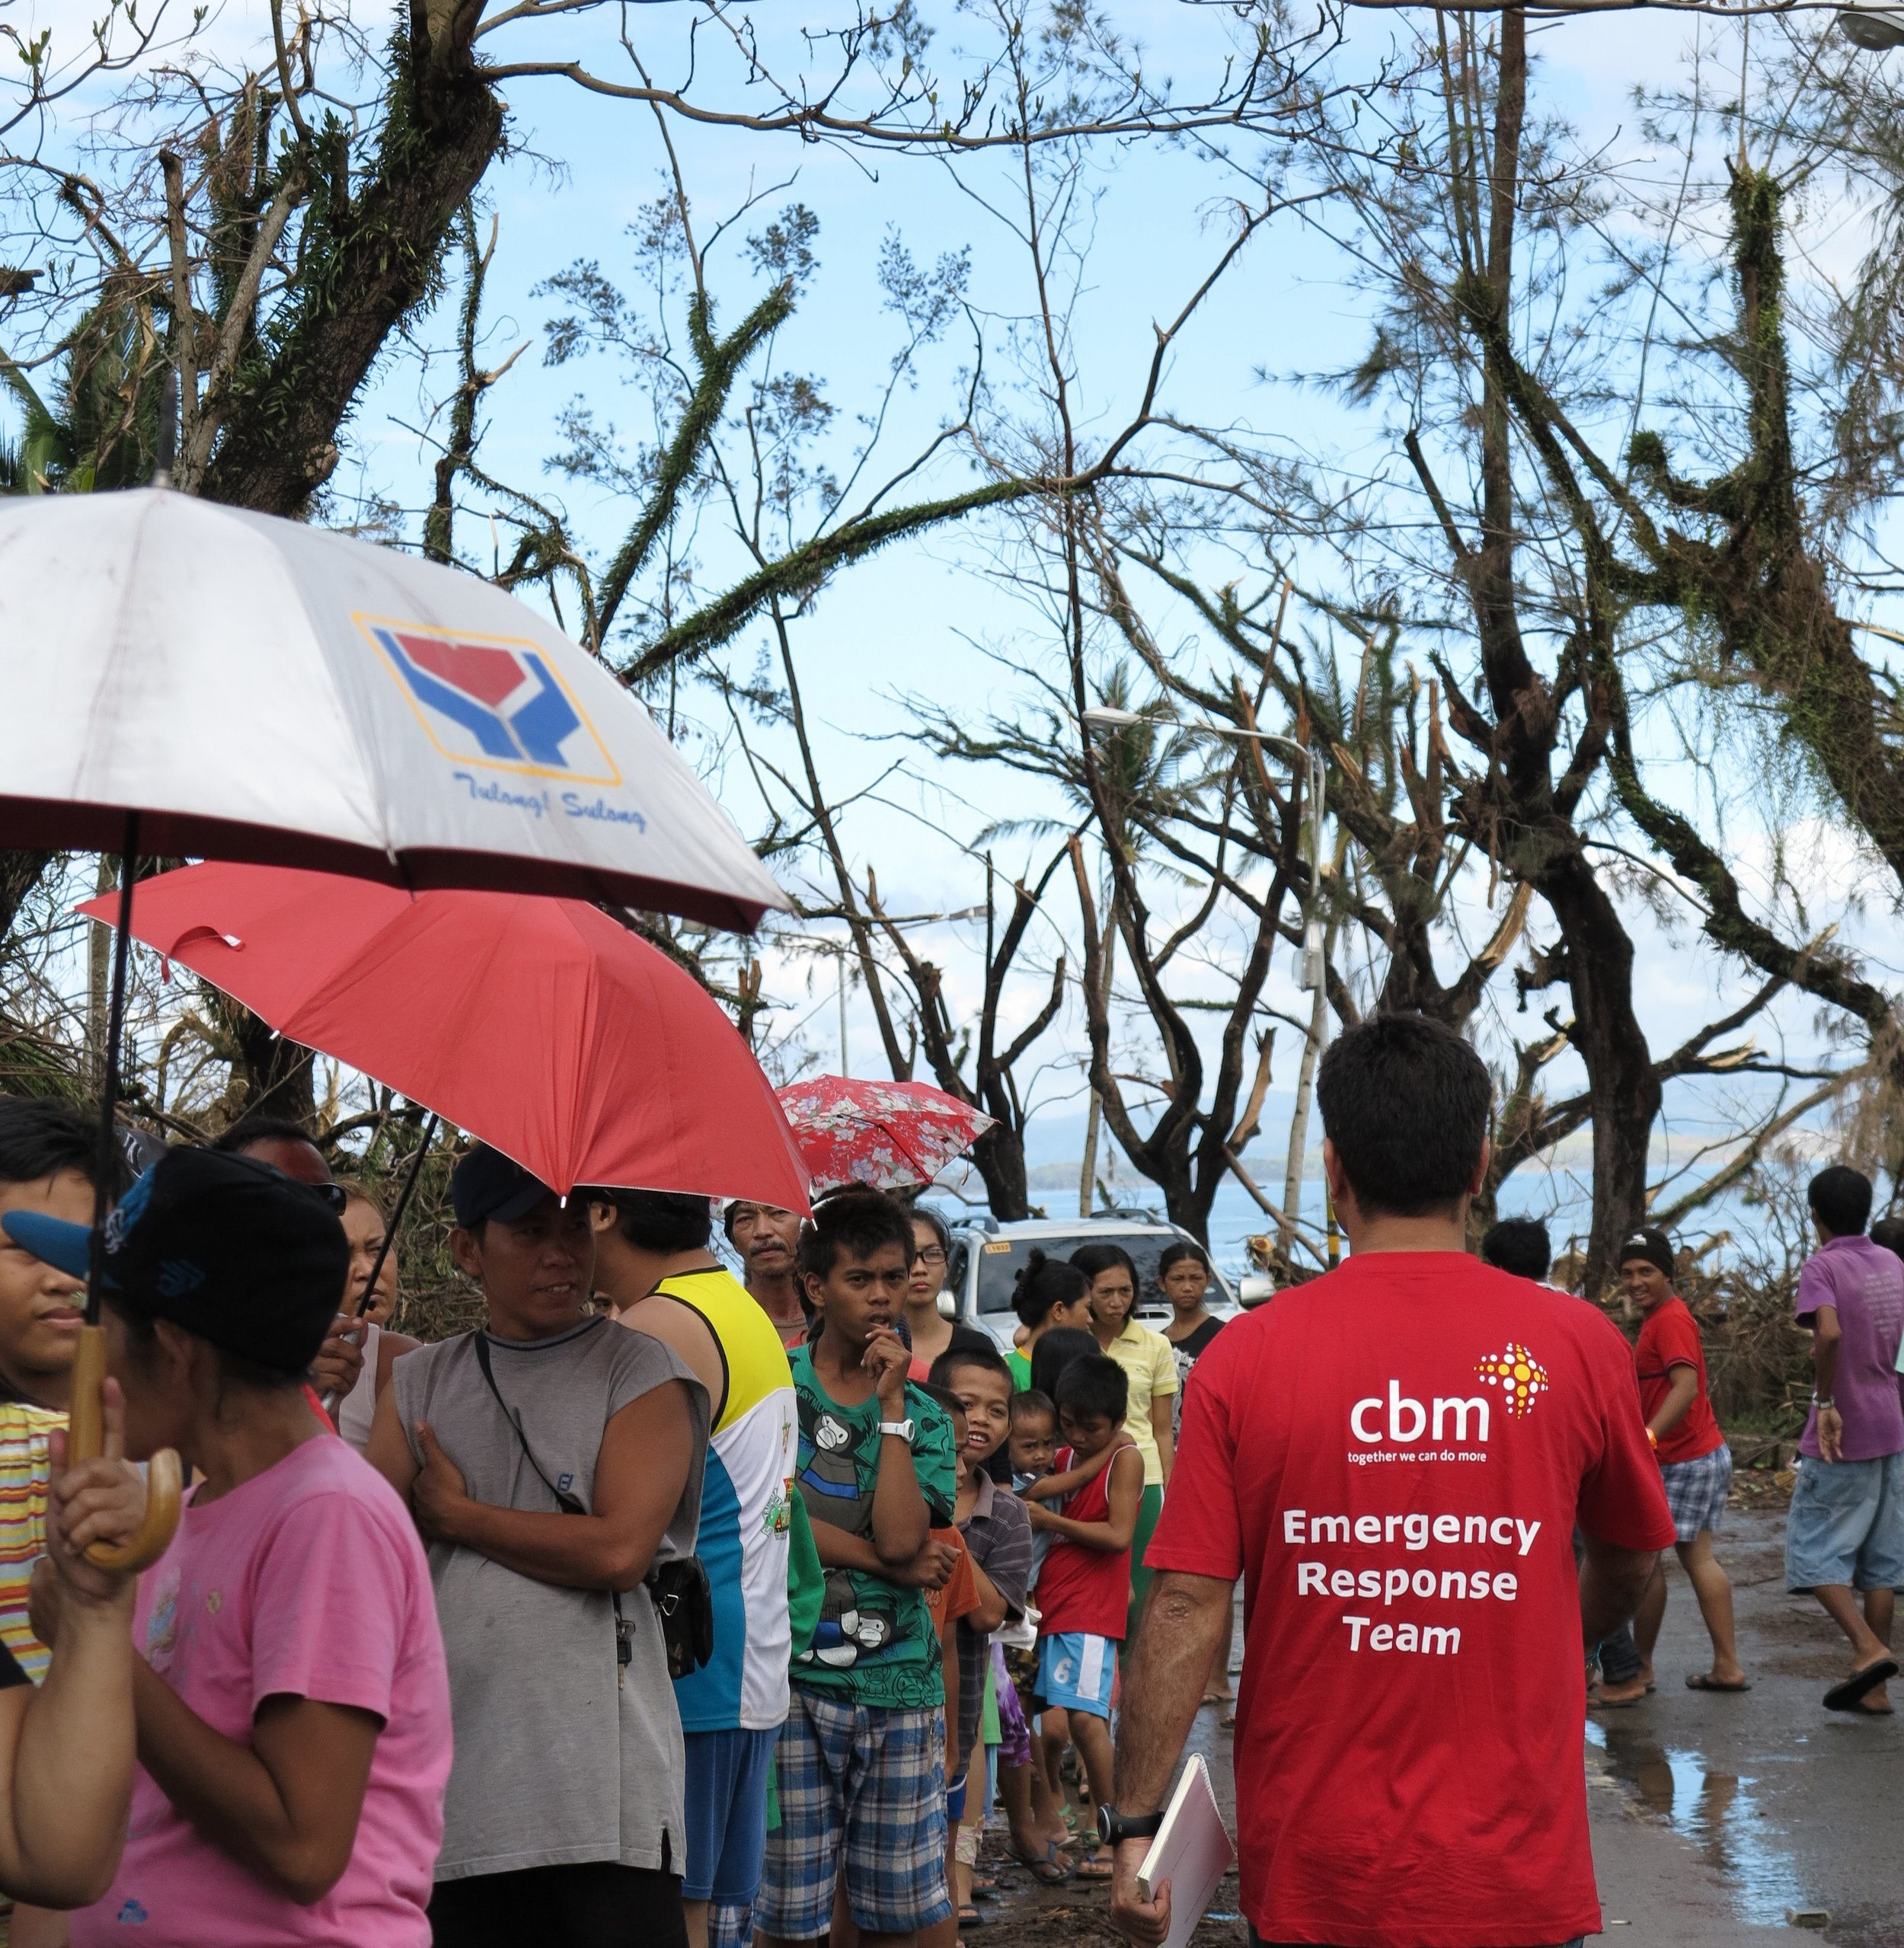 CBM's Emergency Response Team helps people after a disaster